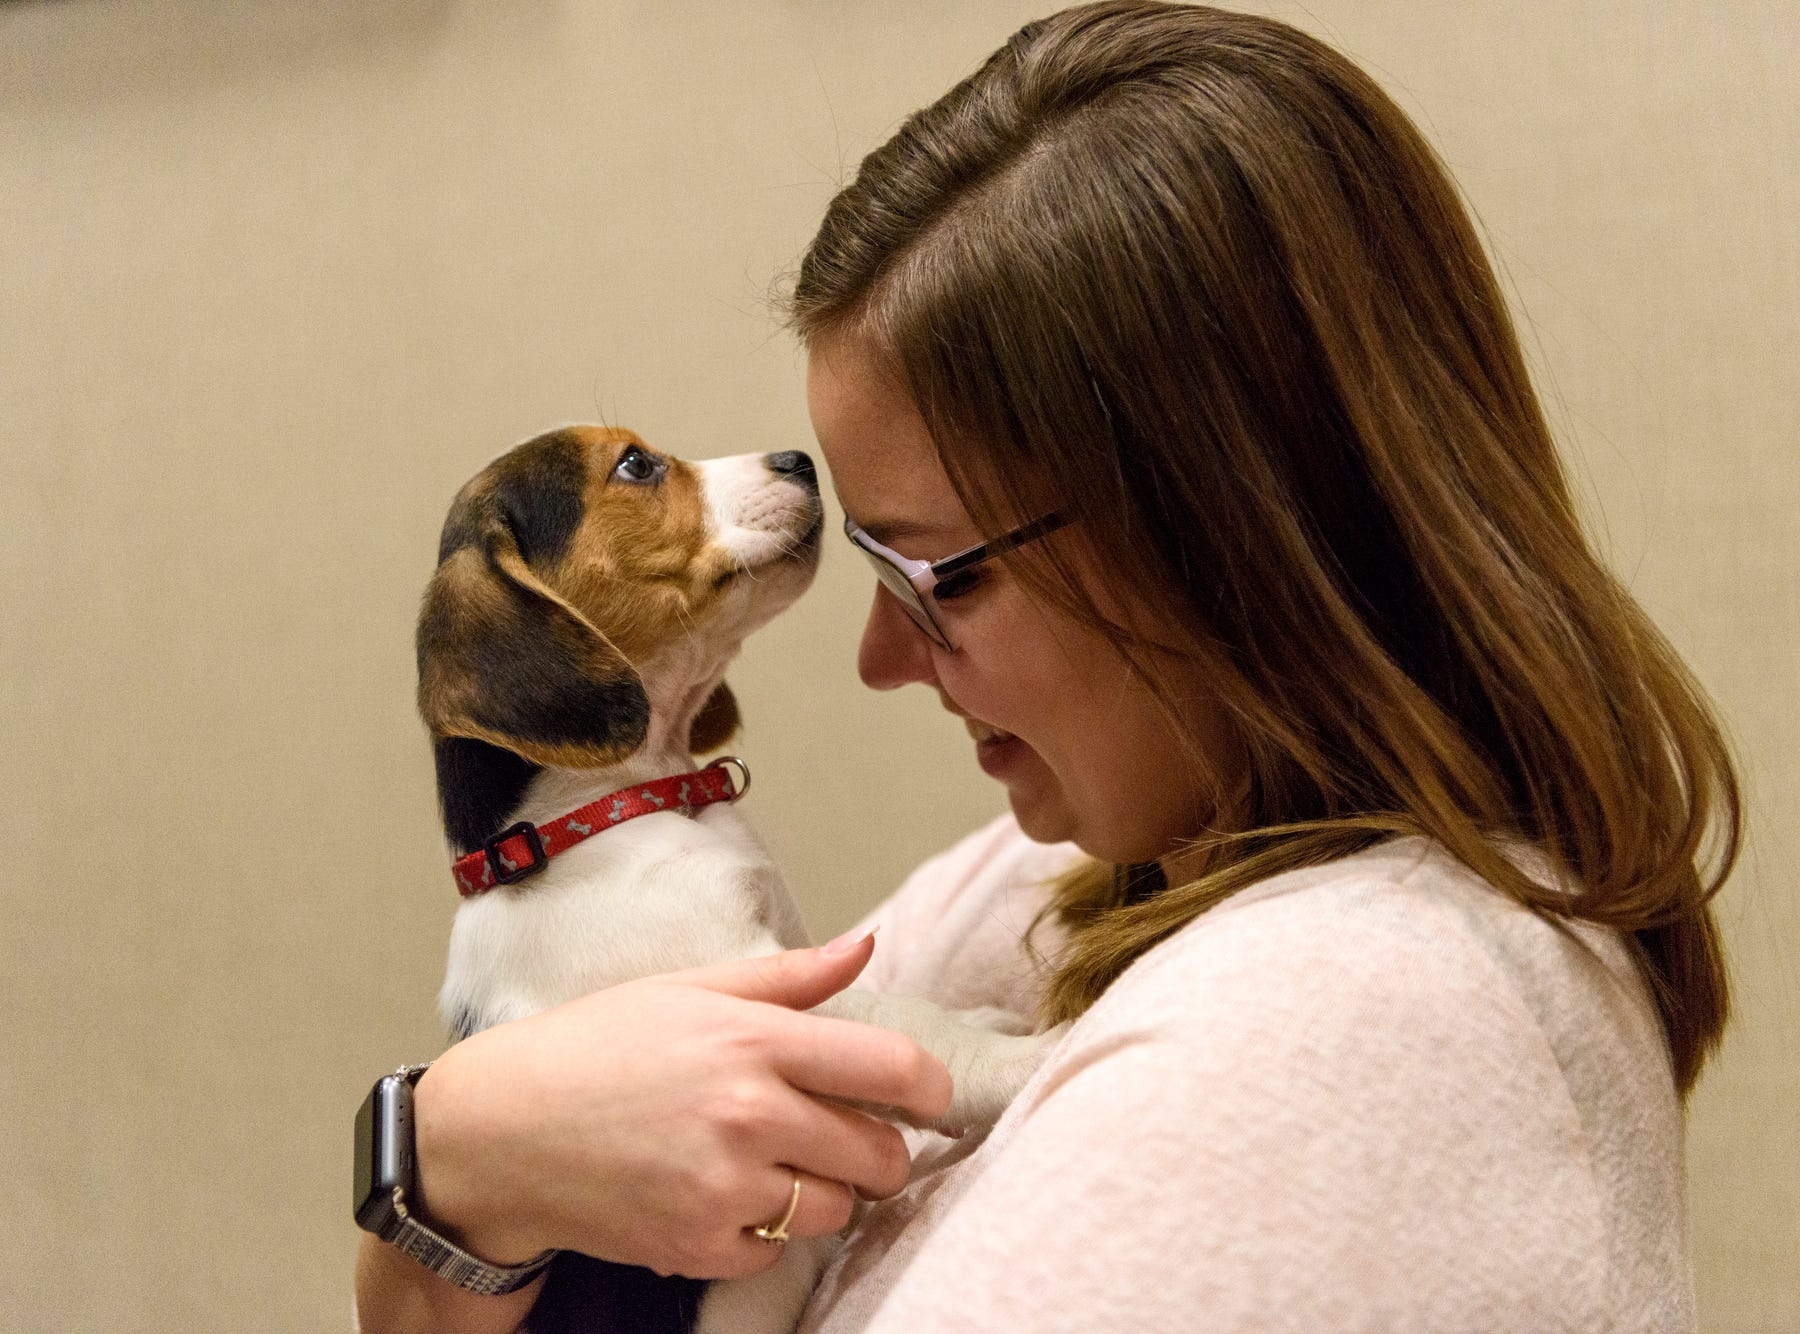 Emily Grace snuggles with Prince, an eight-week-old Beagle puppy, at Evansville Federal Credit Union, Thursday morning, Feb. 14, 2019. Her co-worker, Megan Martin, received a Vanderburgh Humane Society Cuddlegram from her husband which included a 30-minute snuggle session with the puppy.